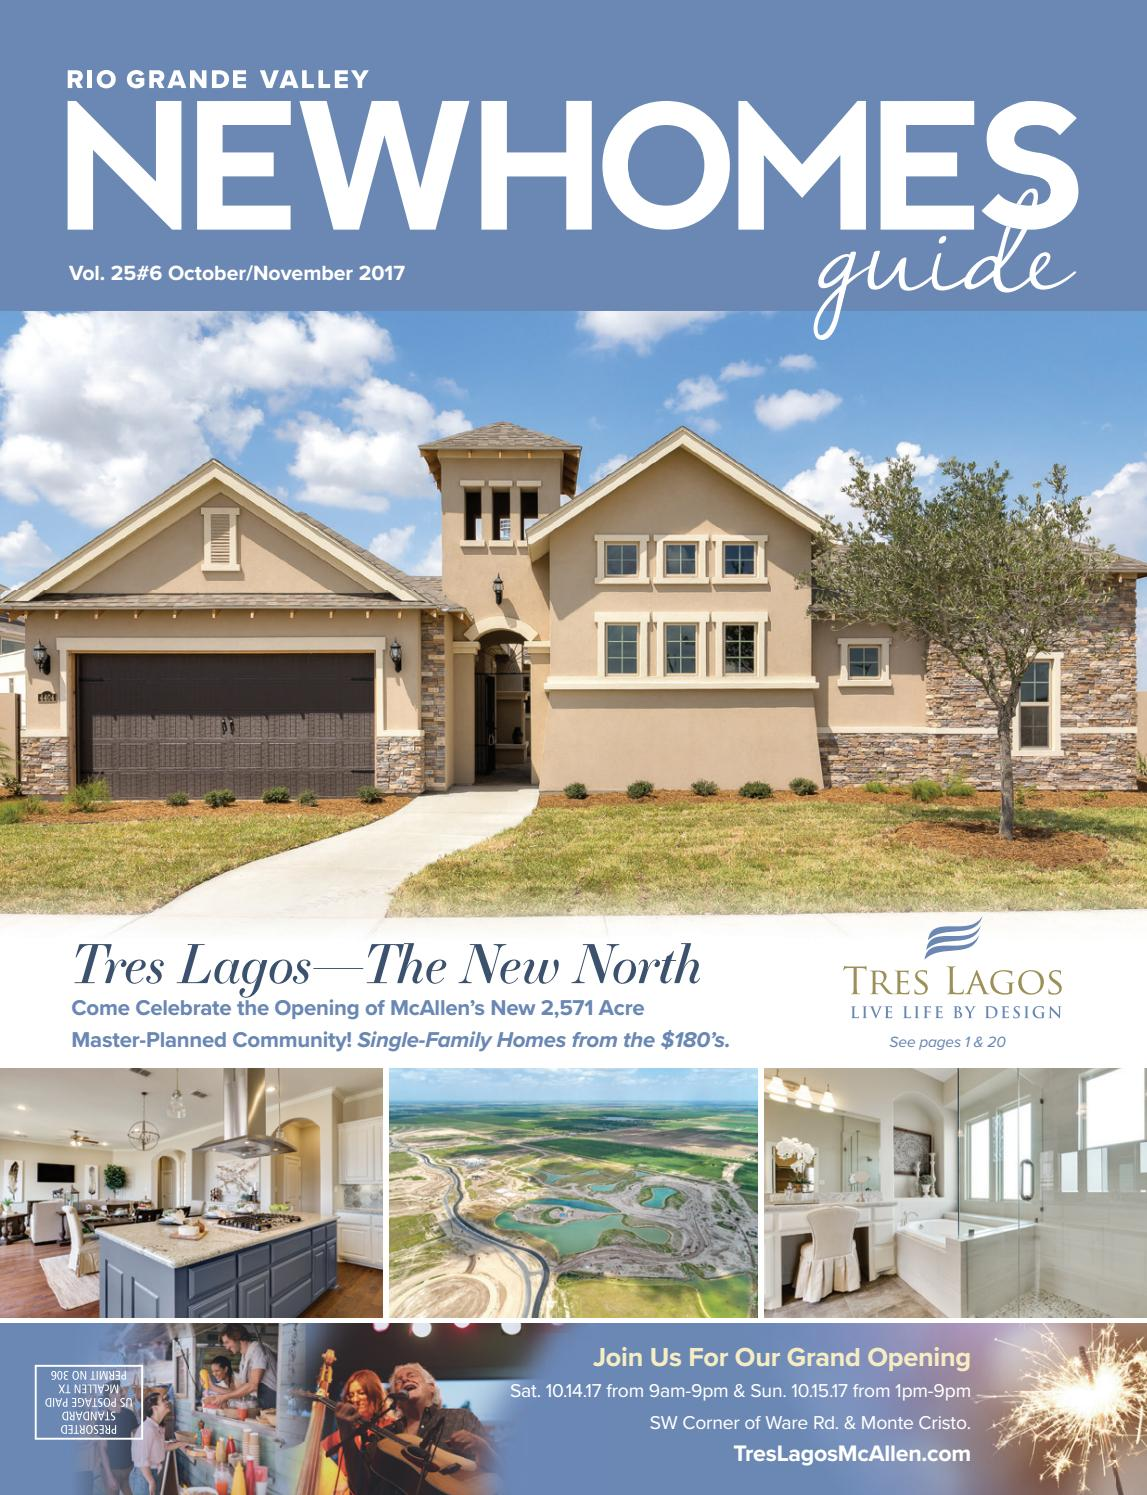 Rgv new homes guide vol 25 6 oct nov 2017 by new for Home builders guide